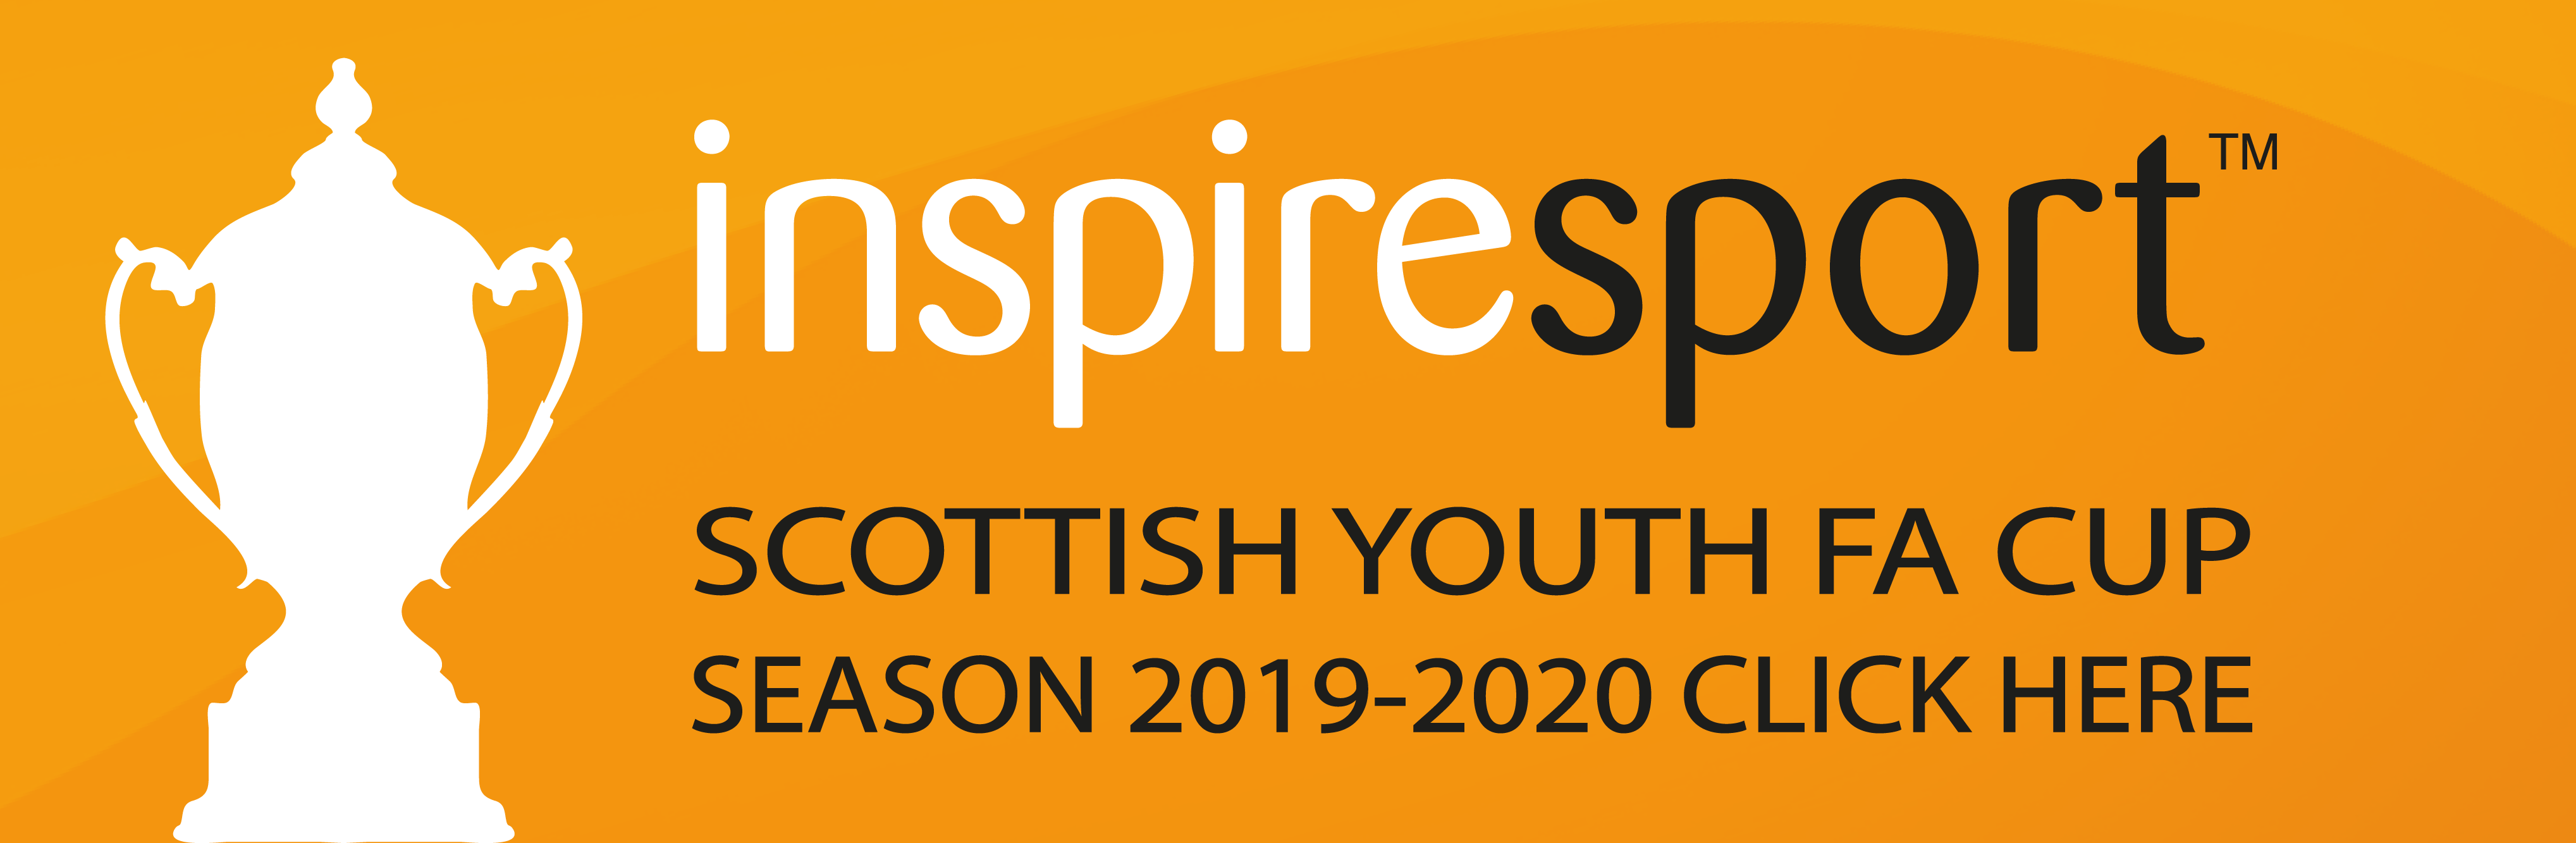 inspiresport Cup Website top banner 2019 20